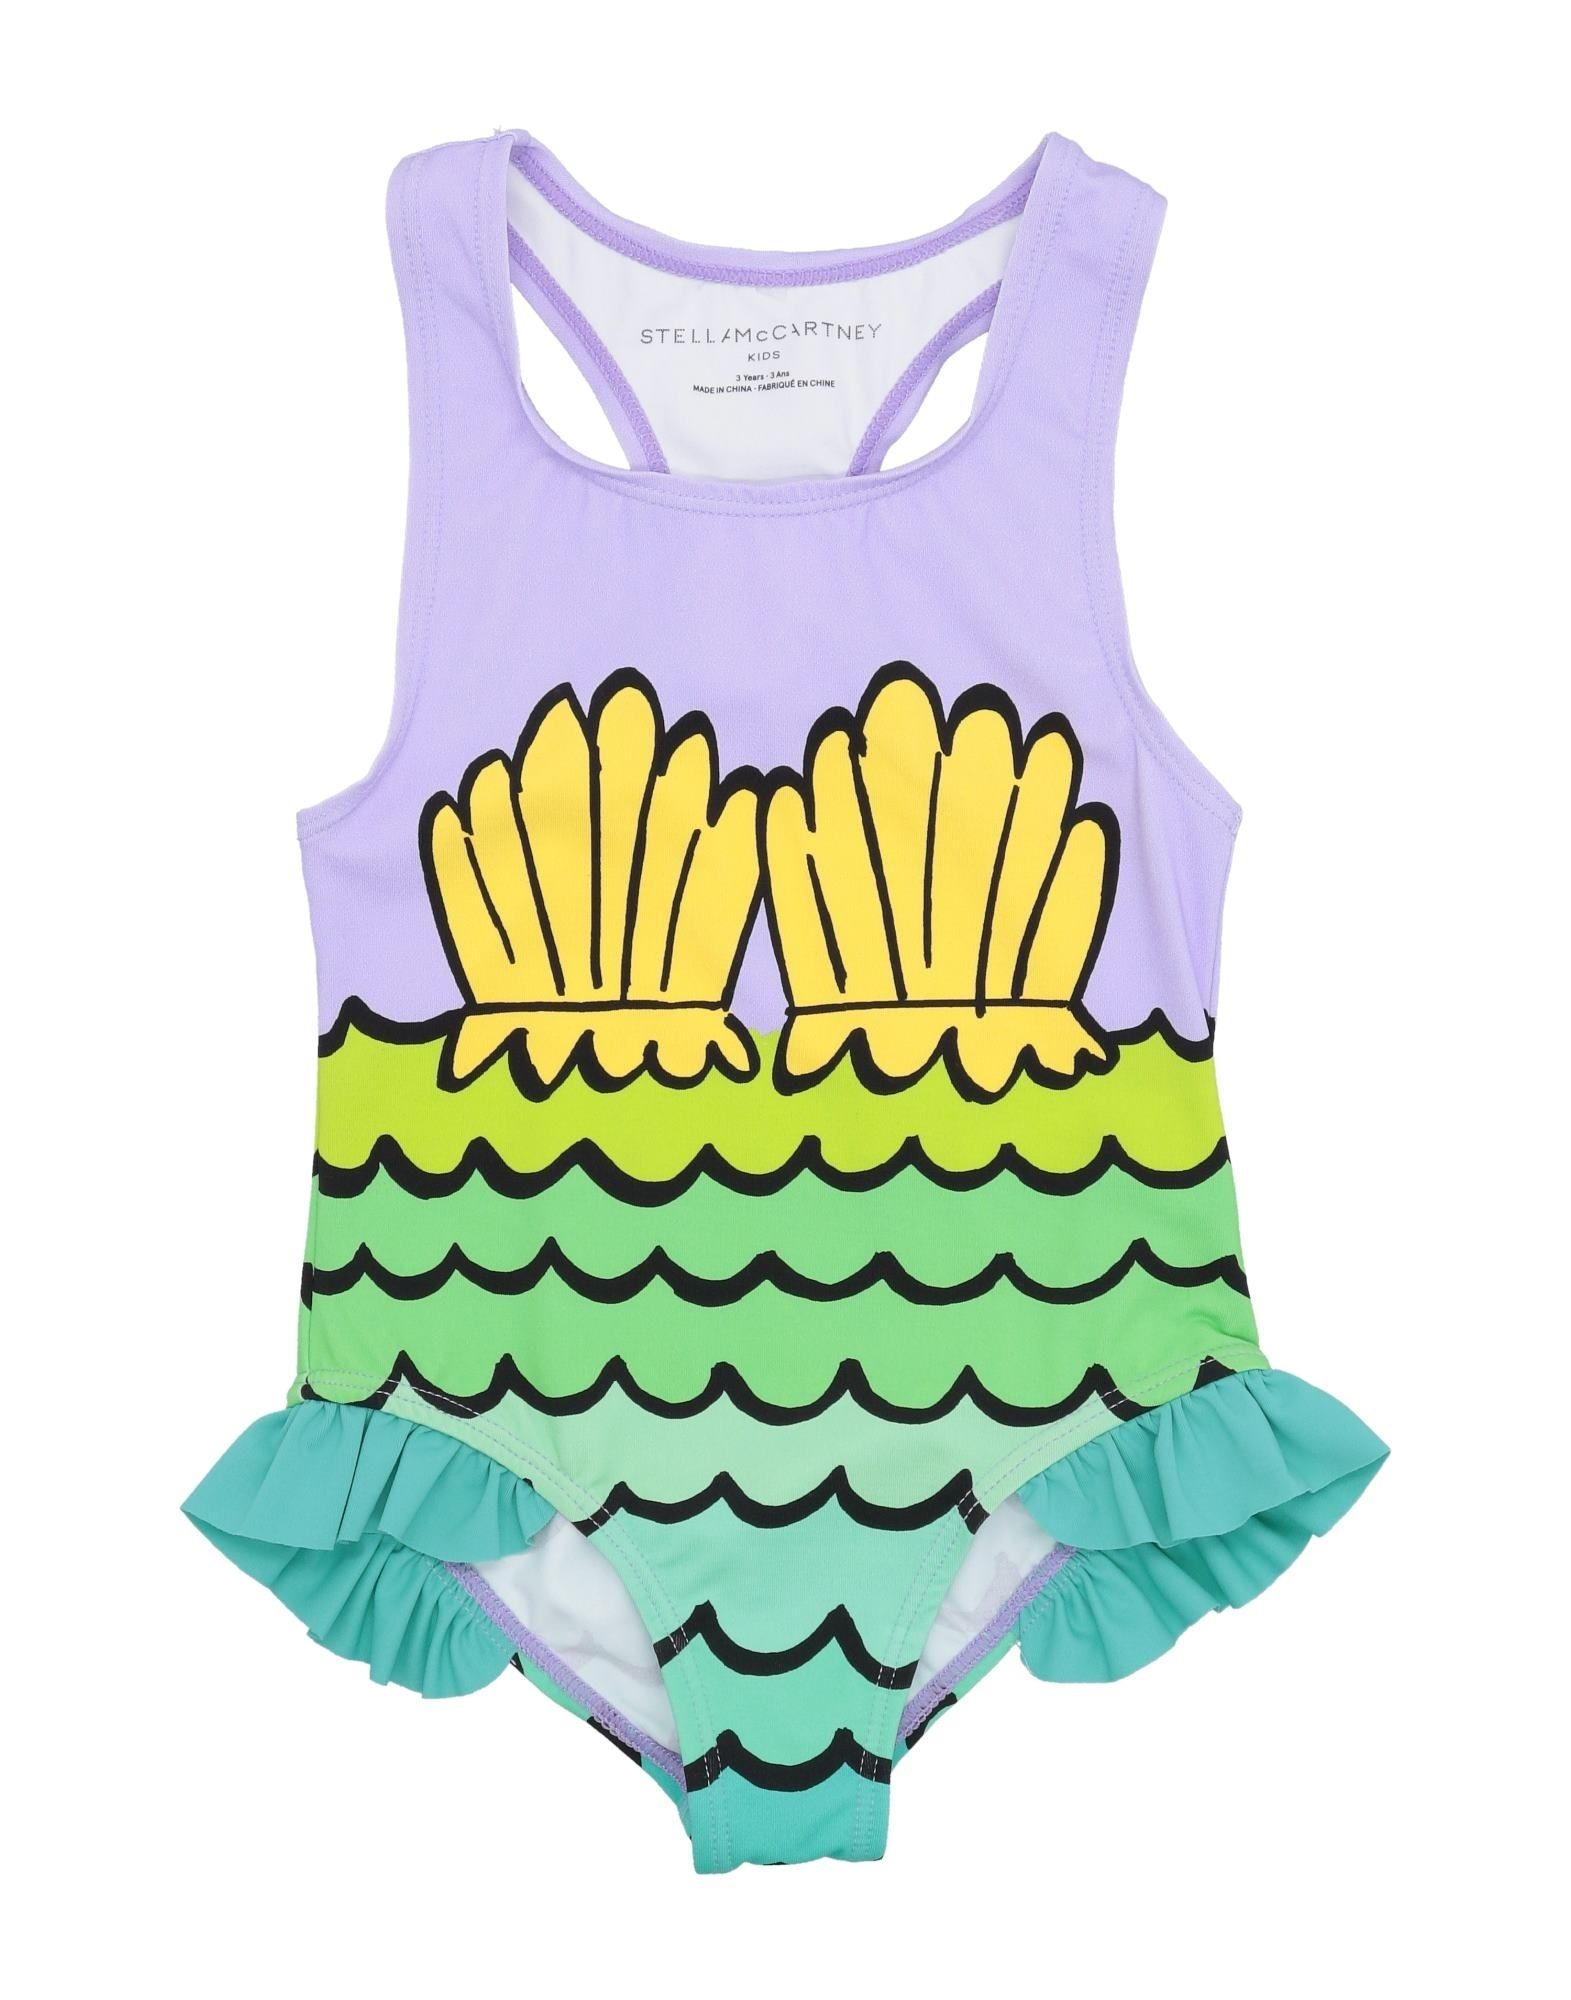 STELLA McCARTNEY KIDS One-piece swimsuits. synthetic jersey, no appliqués, antique effect, multicolor pattern, no fastening, no pockets, stretch, wash at 30degree c, do not dry clean, do not iron, do not bleach, do not tumble dry. 78% Polyamide, 22% Elastane, Recycled nylon